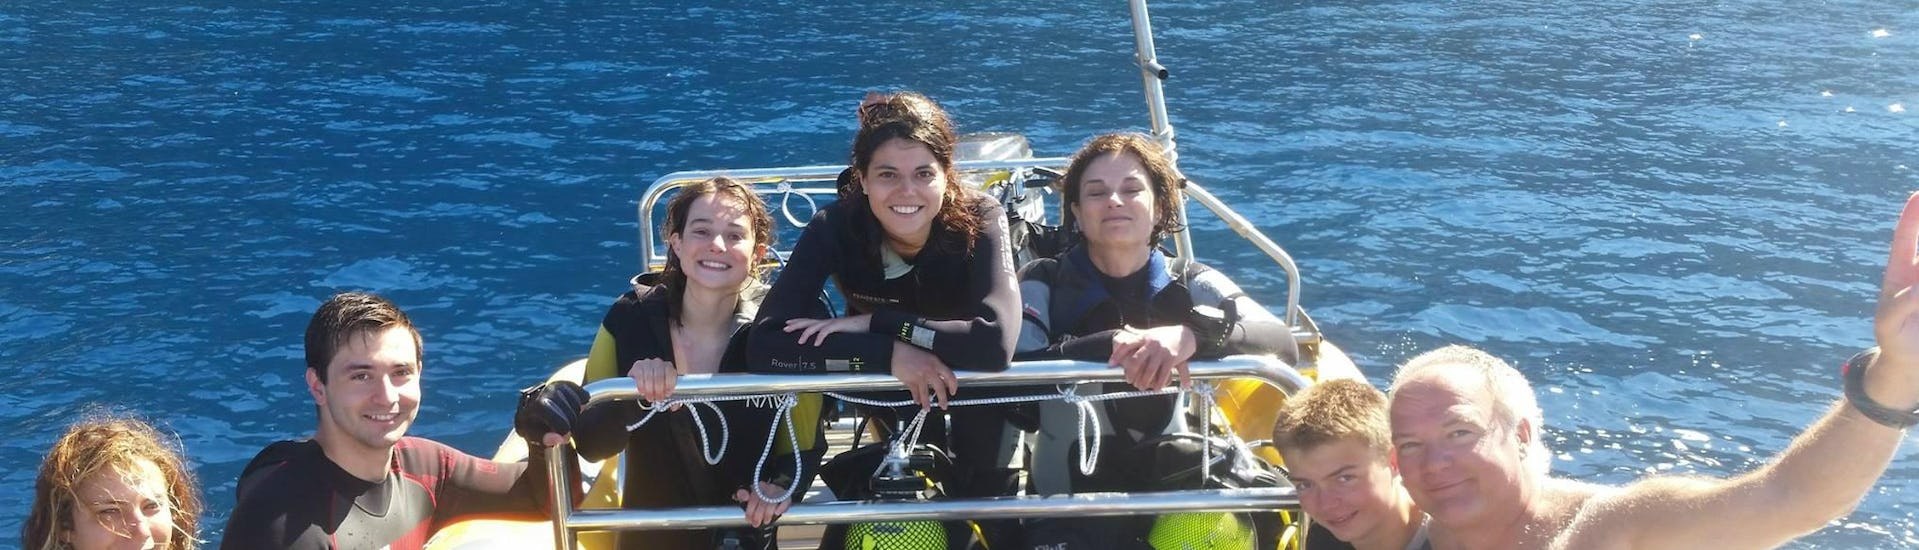 Snorkeling Excursion in Faial